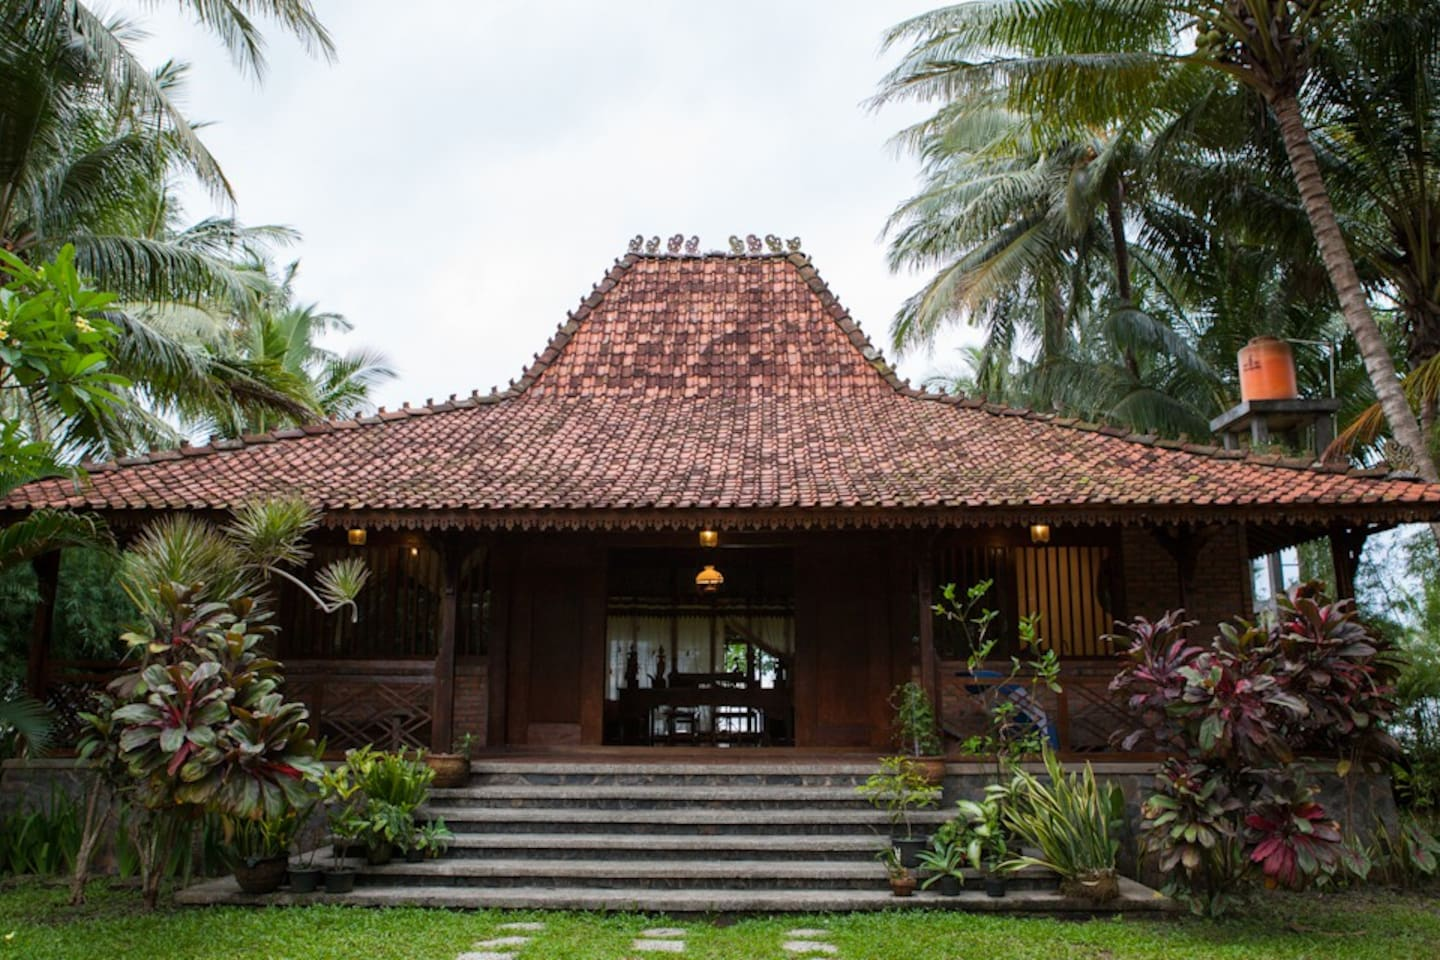 Welcome to the traditional Javanese Joglo house